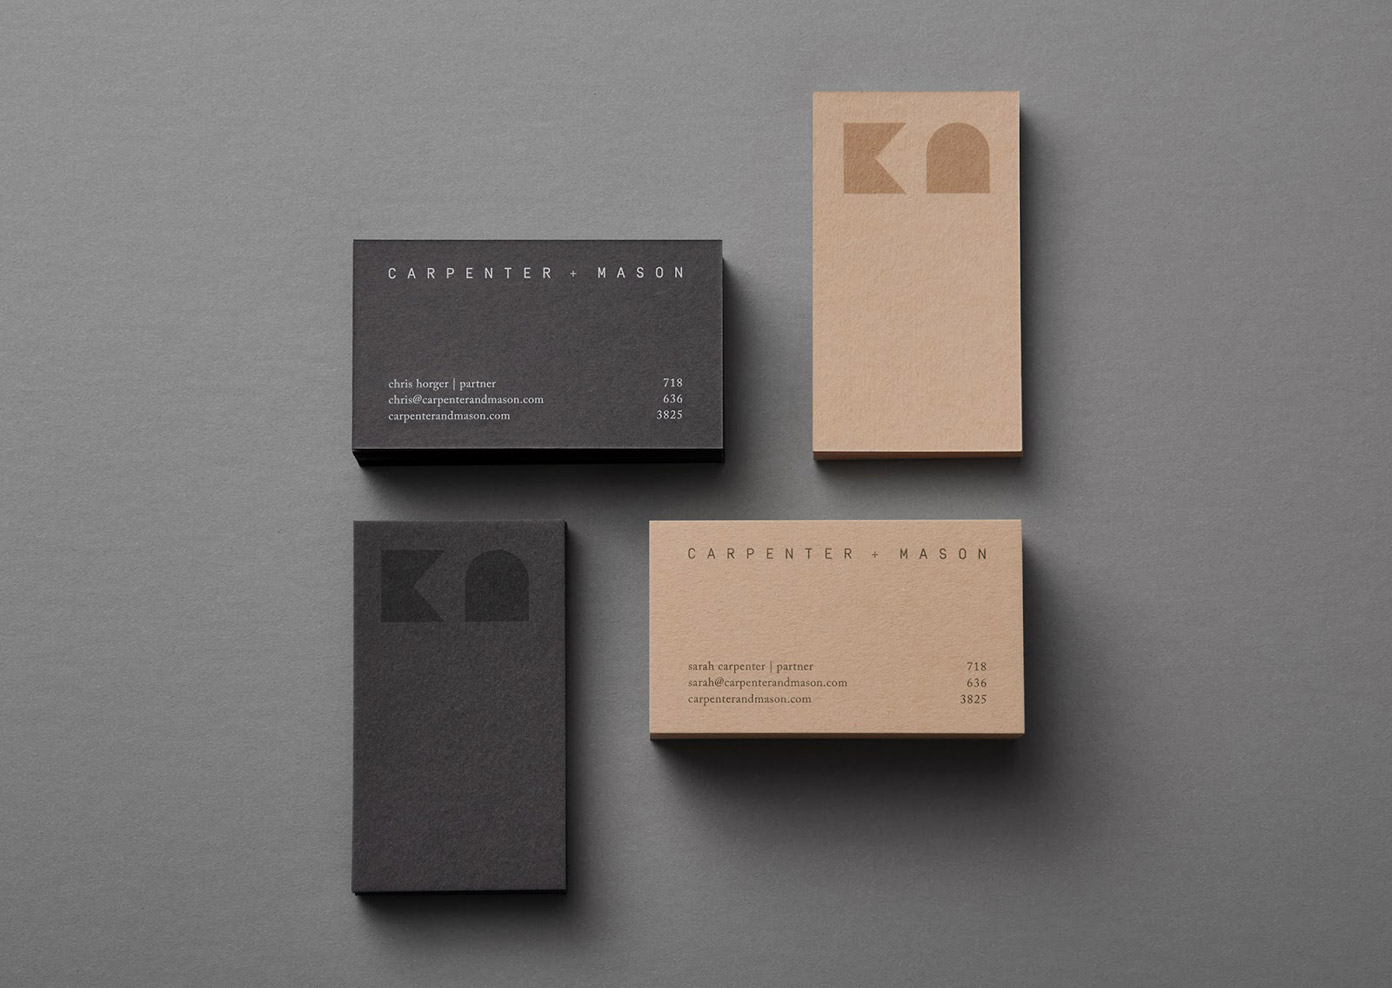 CARPENTER + MASON Branding by LMNOP